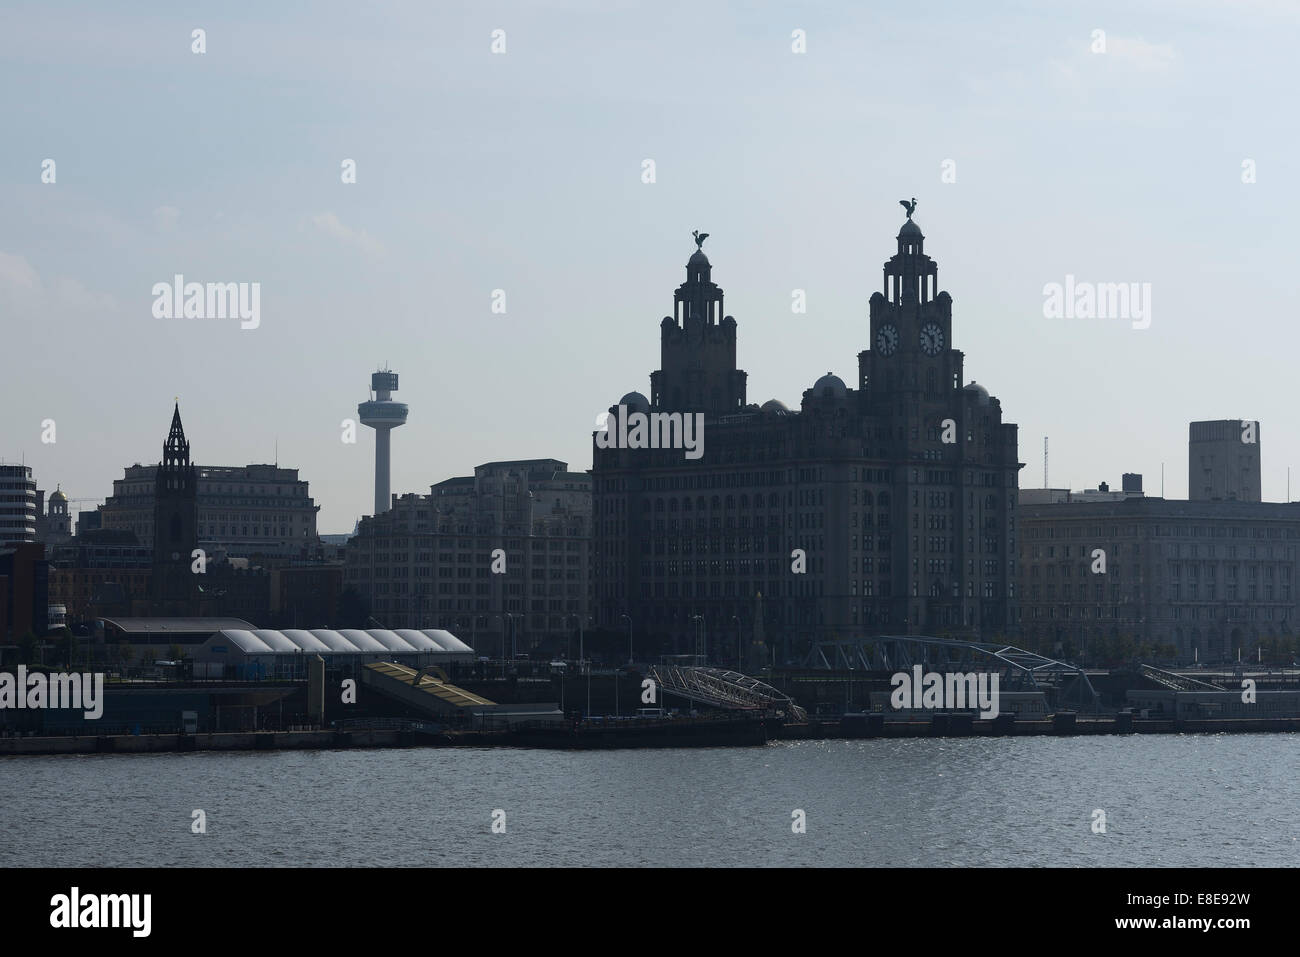 The Liver Building and Liverpool skyline in silhouette - Stock Image